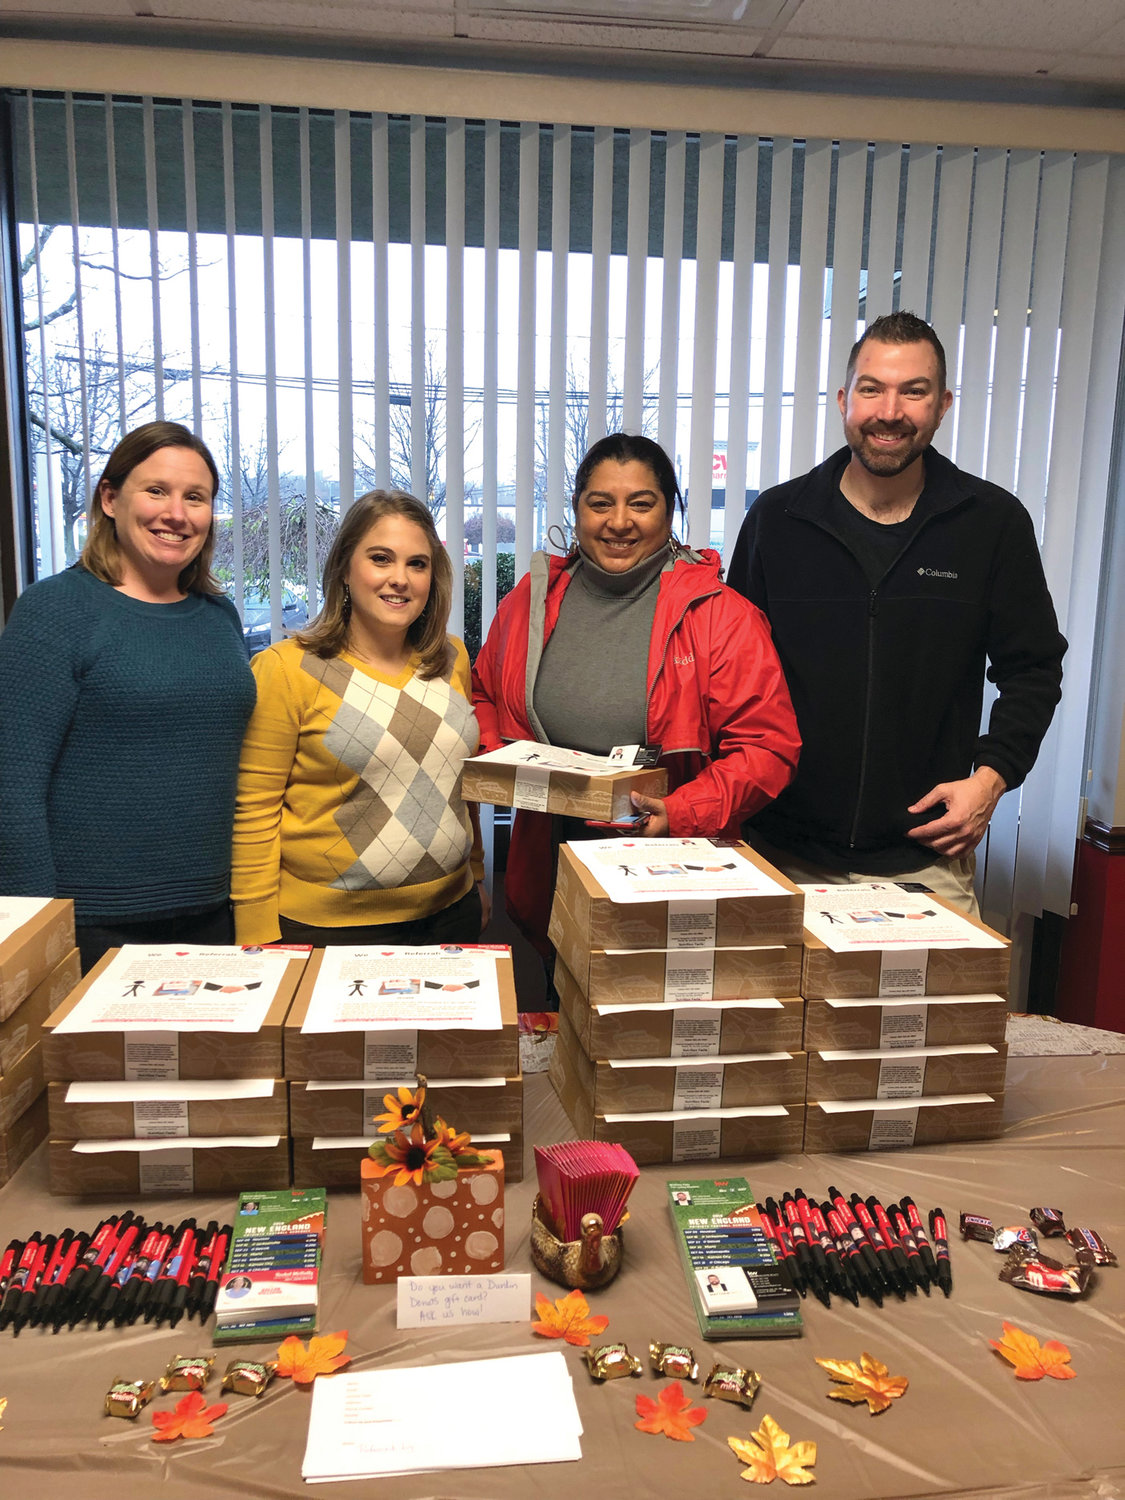 PATTY'S PIES:  Members of the Matt Patty Keller Williams team, Rachel McNally, Katherine Berryman administrator, client Rosaura Polanco and Matt Patty pose in front of all the client pies ready for the taking at the Keller Williams Cranston office on Pontiac Avenue.